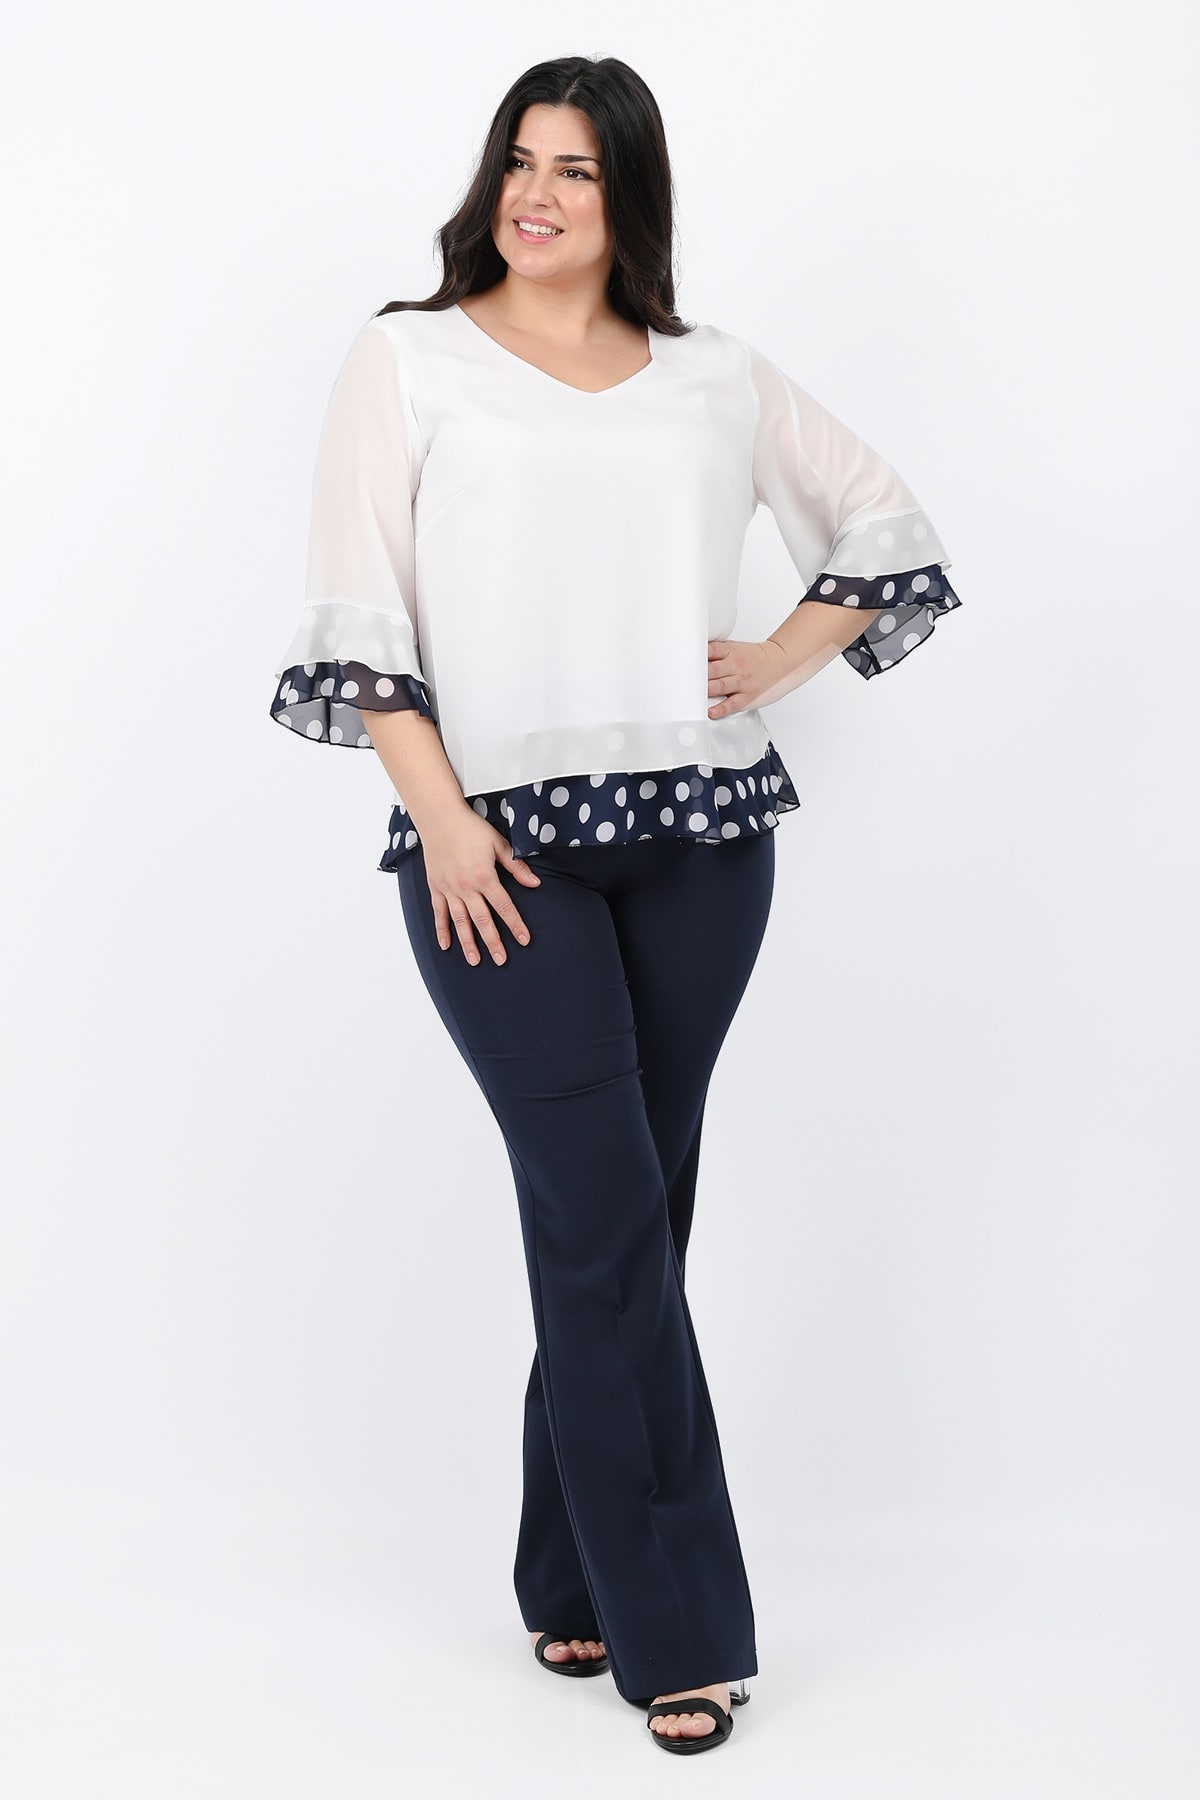 Shirtblouse with polka dots details